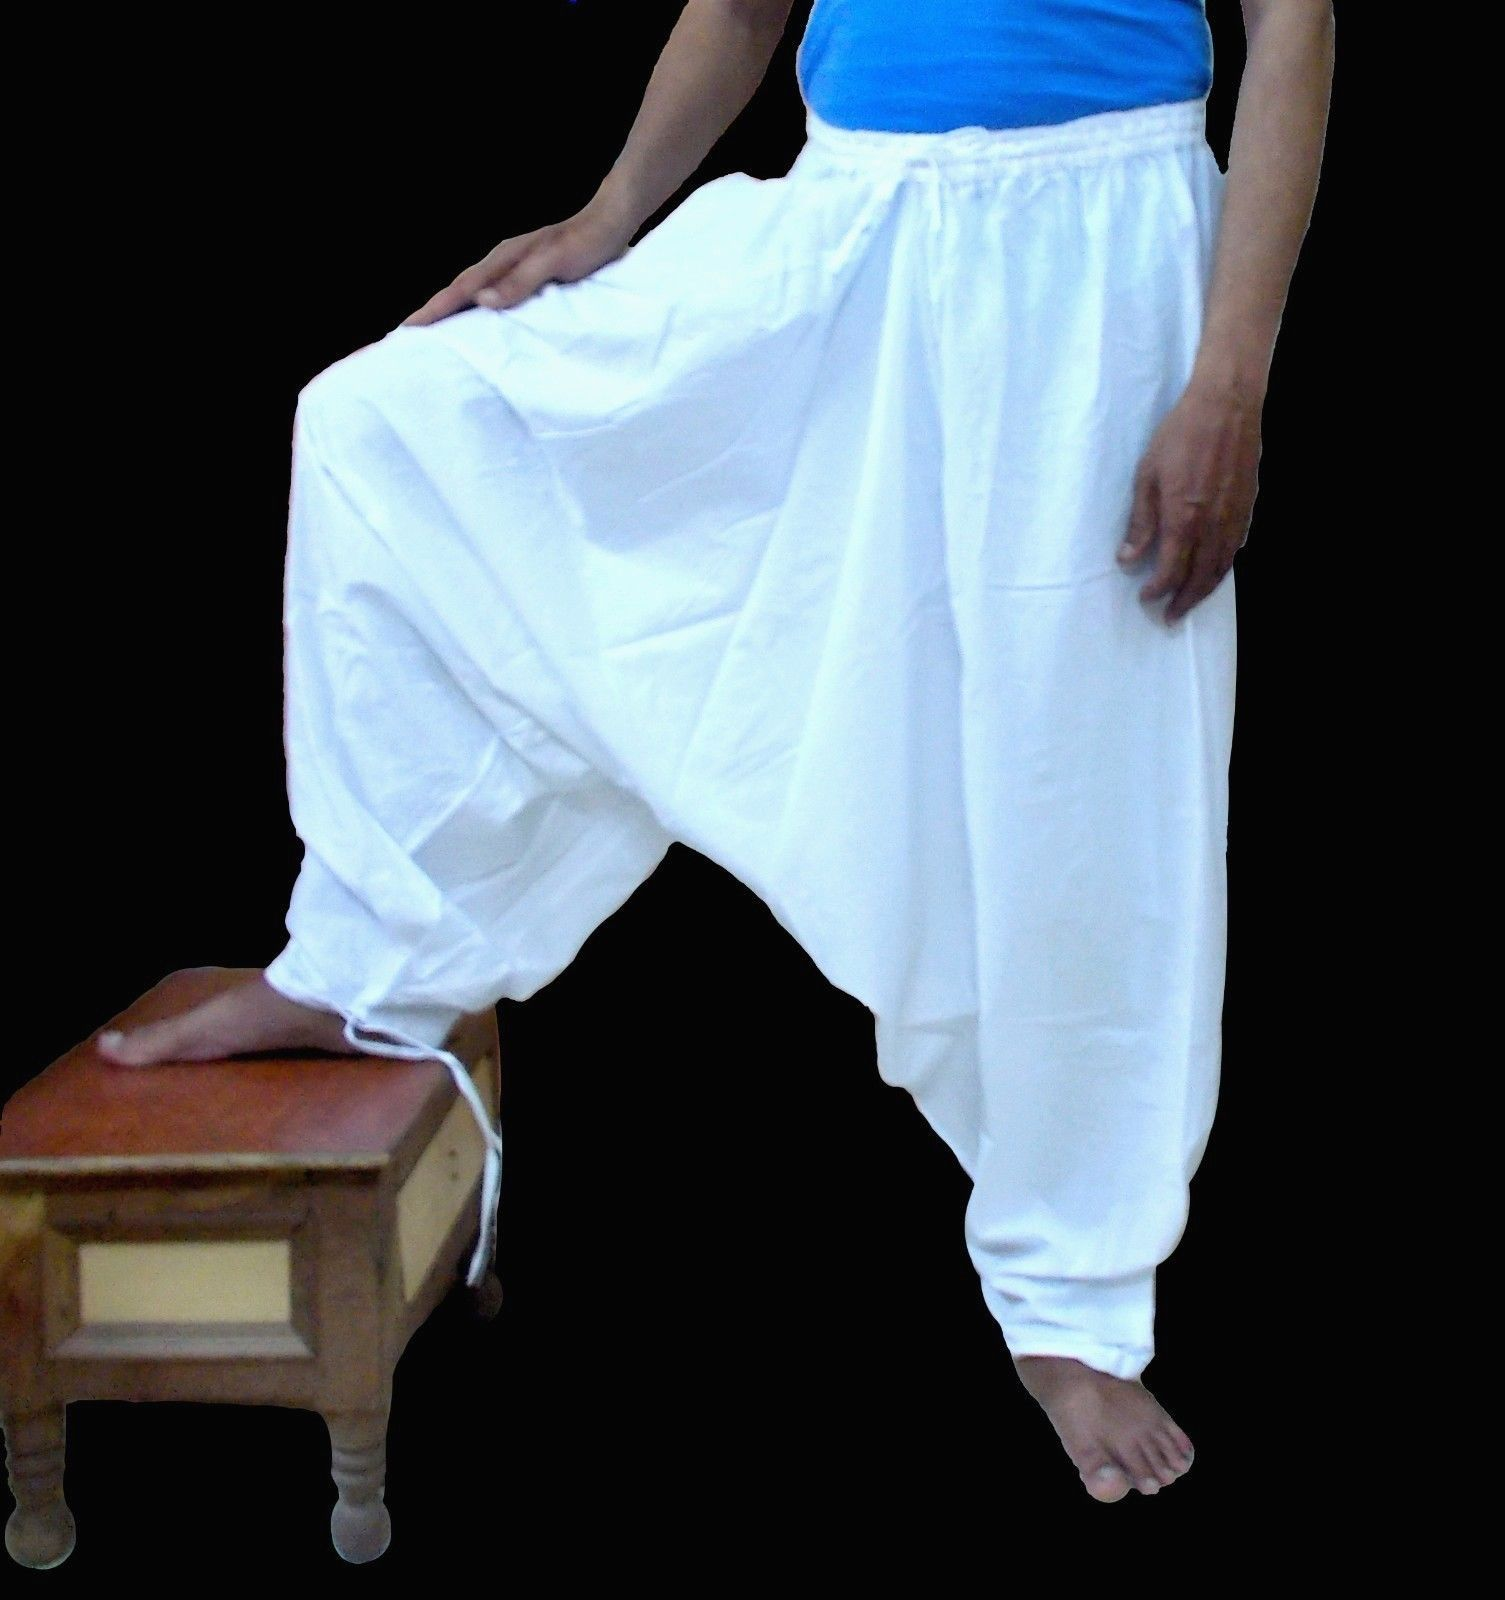 http://i.ebayimg.com/t/Mens-Cotton-White-Harem-Pants-Trousers ...